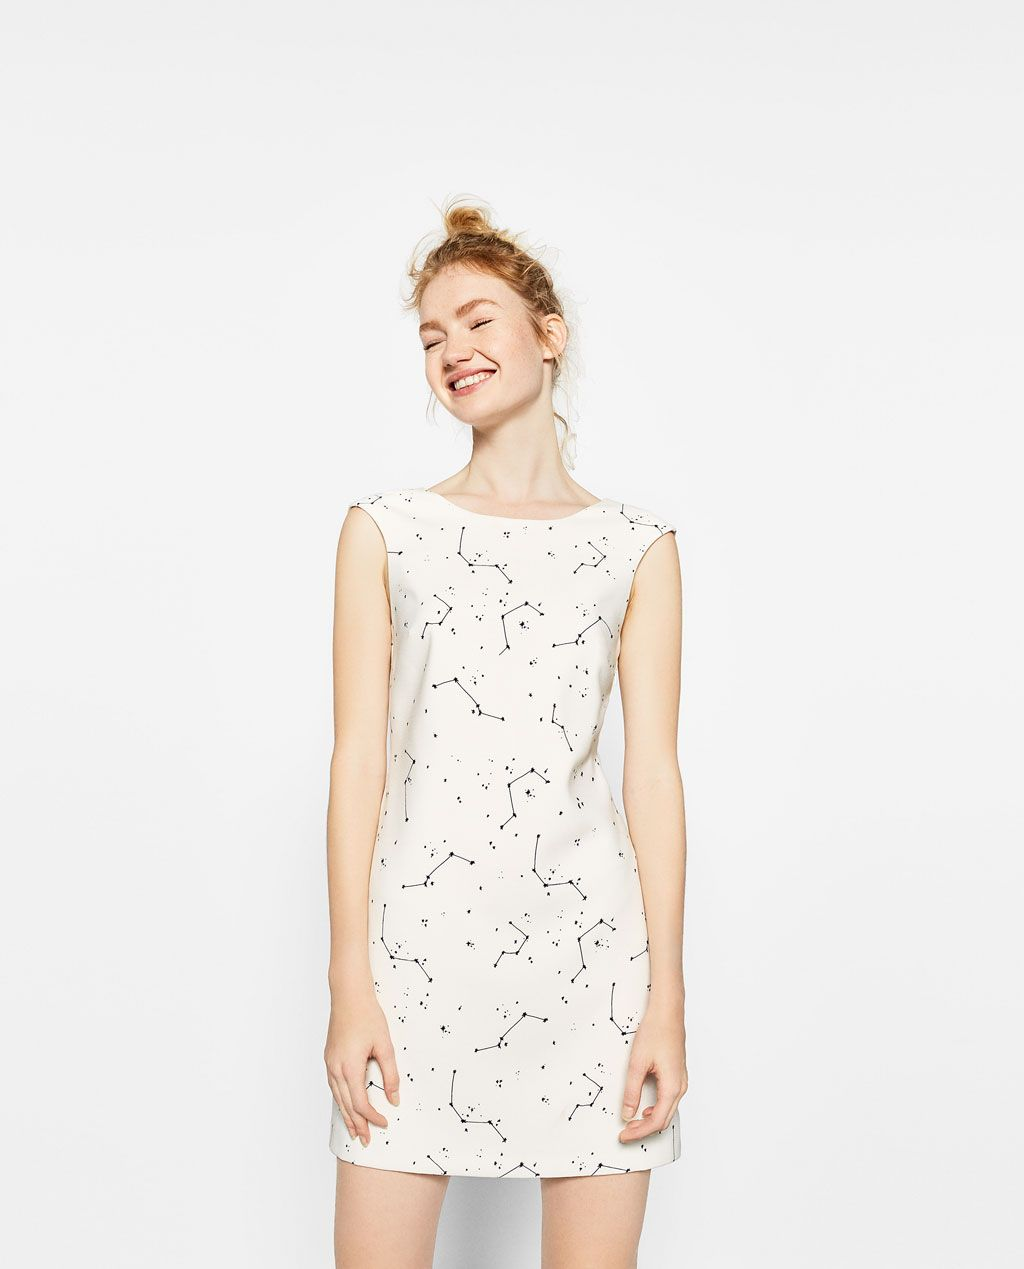 White dress at zara - Find This Pin And More On Zara C M White Dress Zara